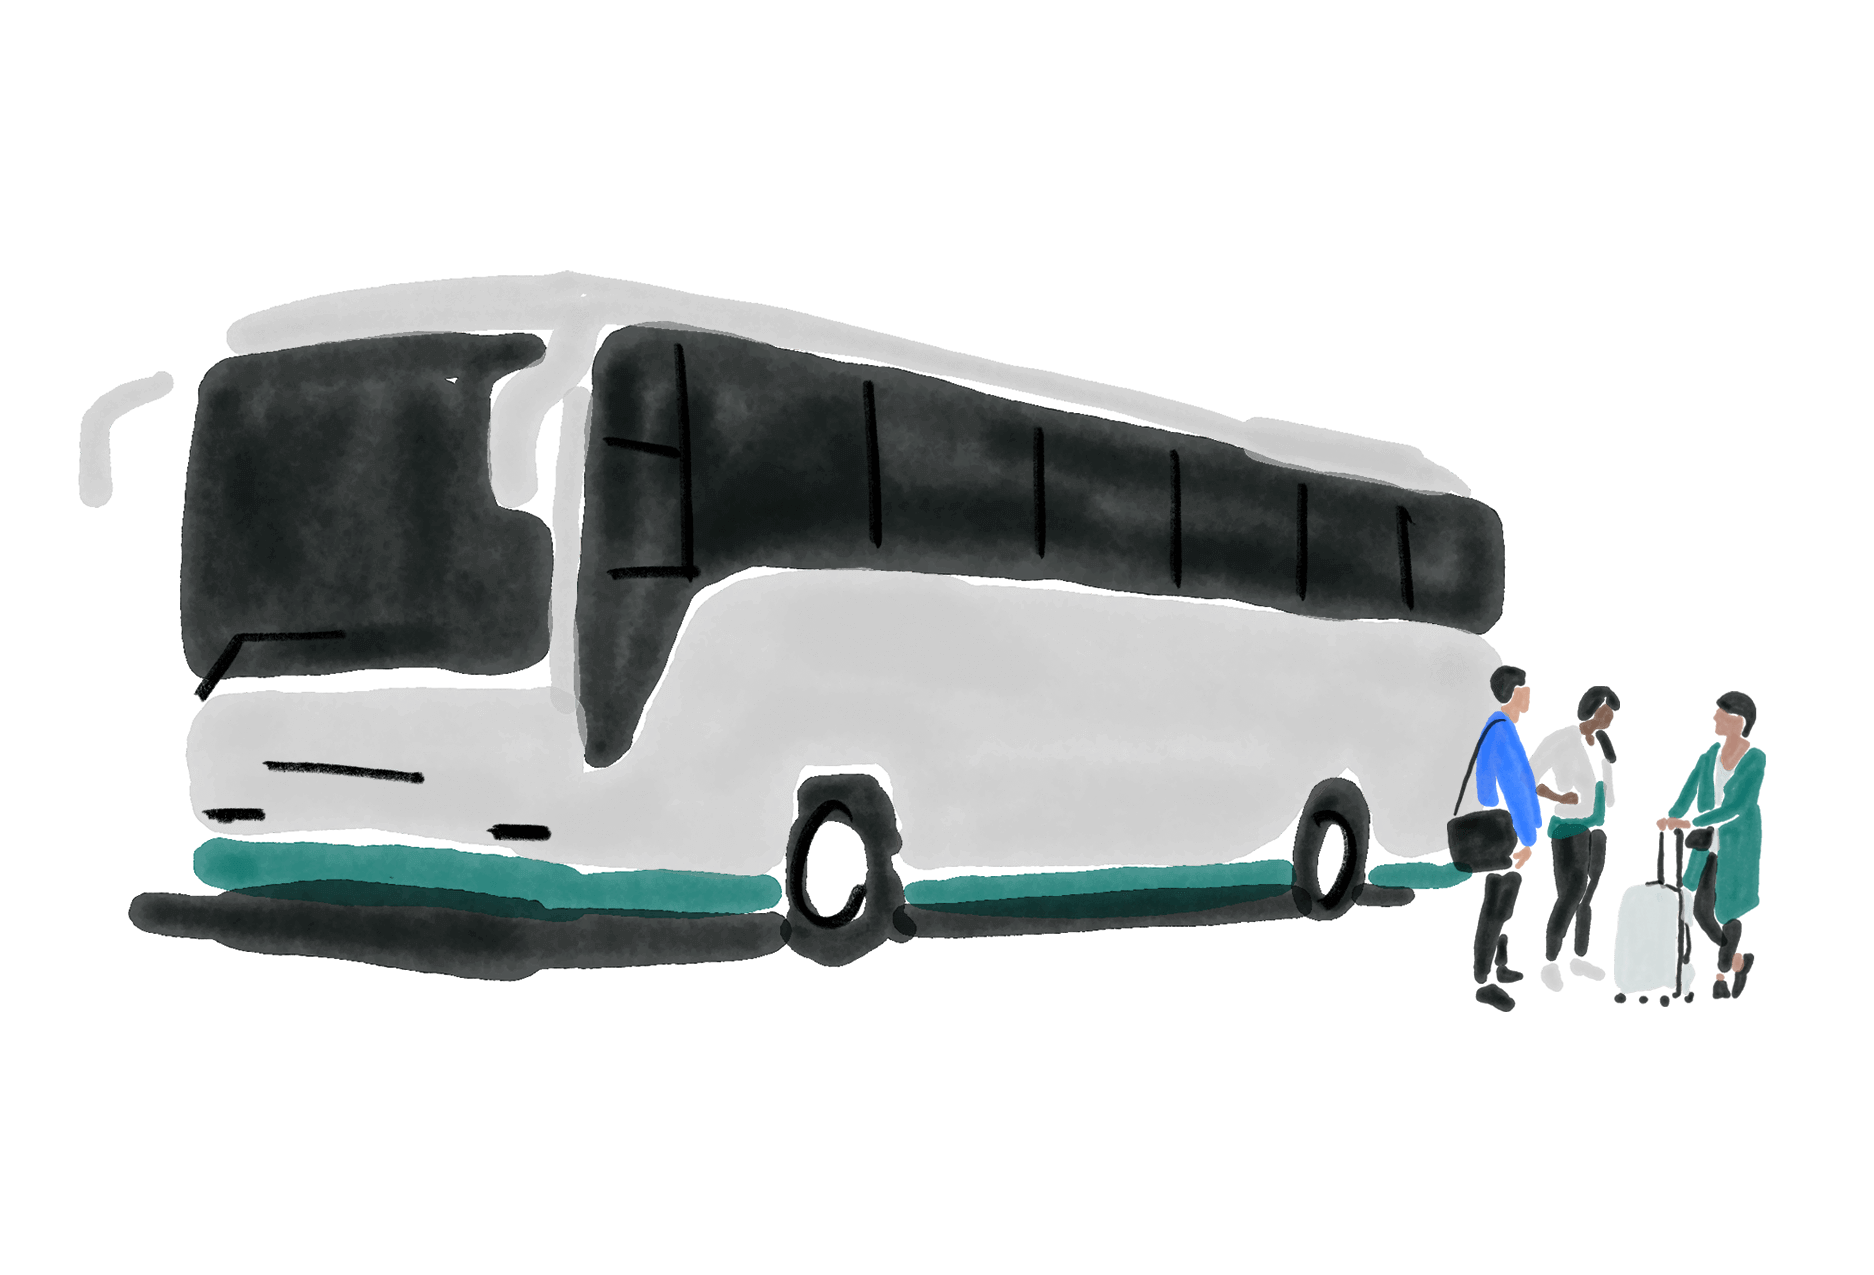 An illustration of a bus and group of people